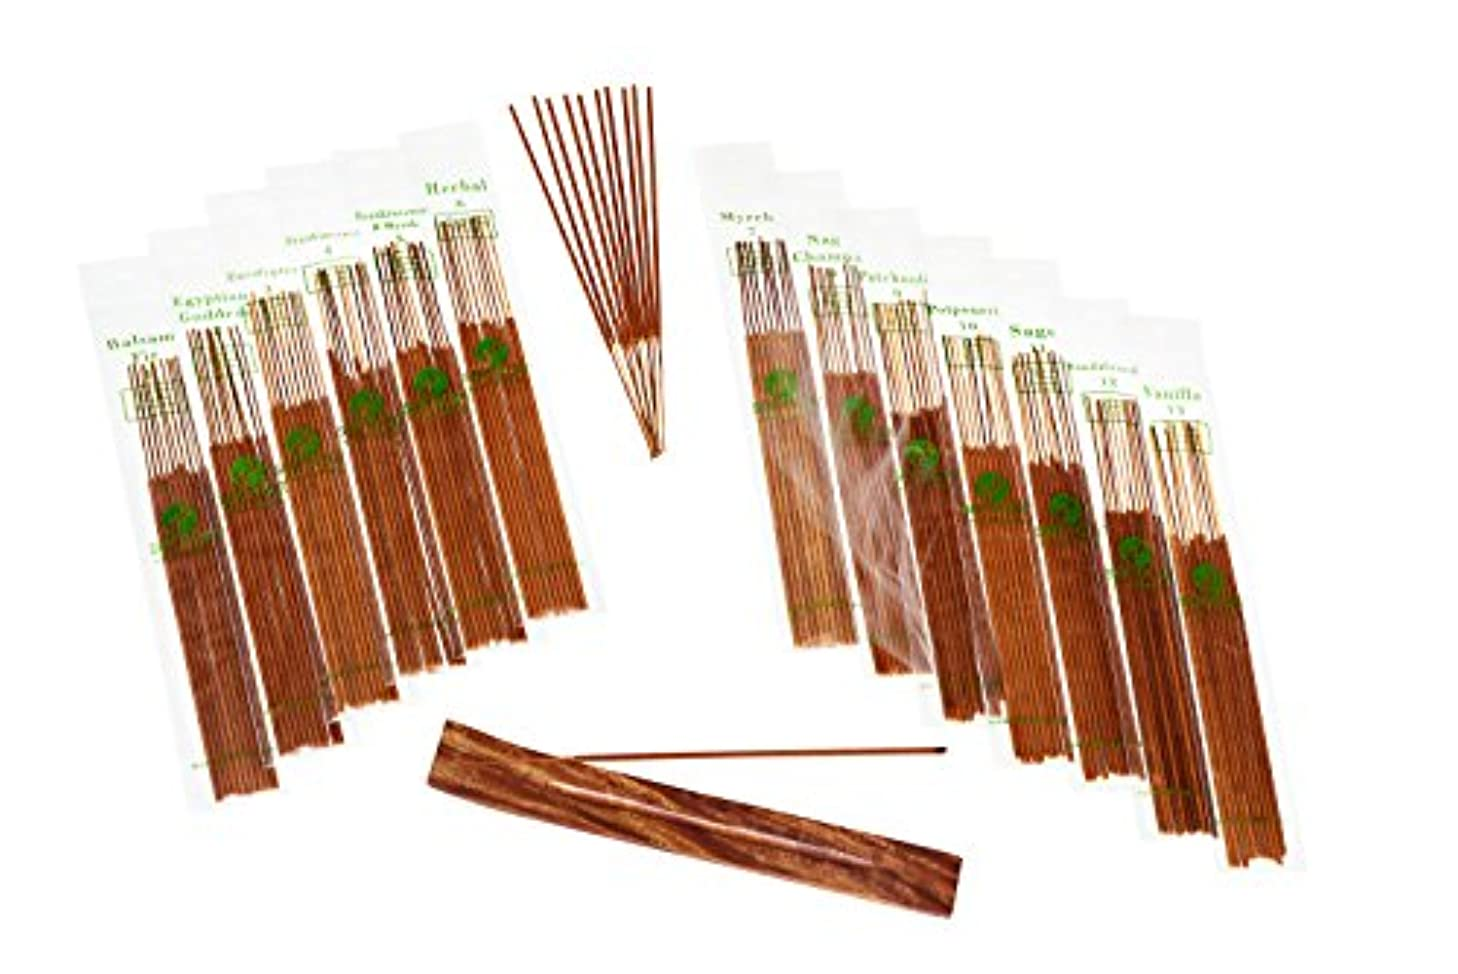 メモ分泌する剪断SENSARI HAND-DIPPED INCENSE & BURNER GIFT SET - 120 Stick Variety, 12 Scent Assortment - Nag Champa, Sandalwood...